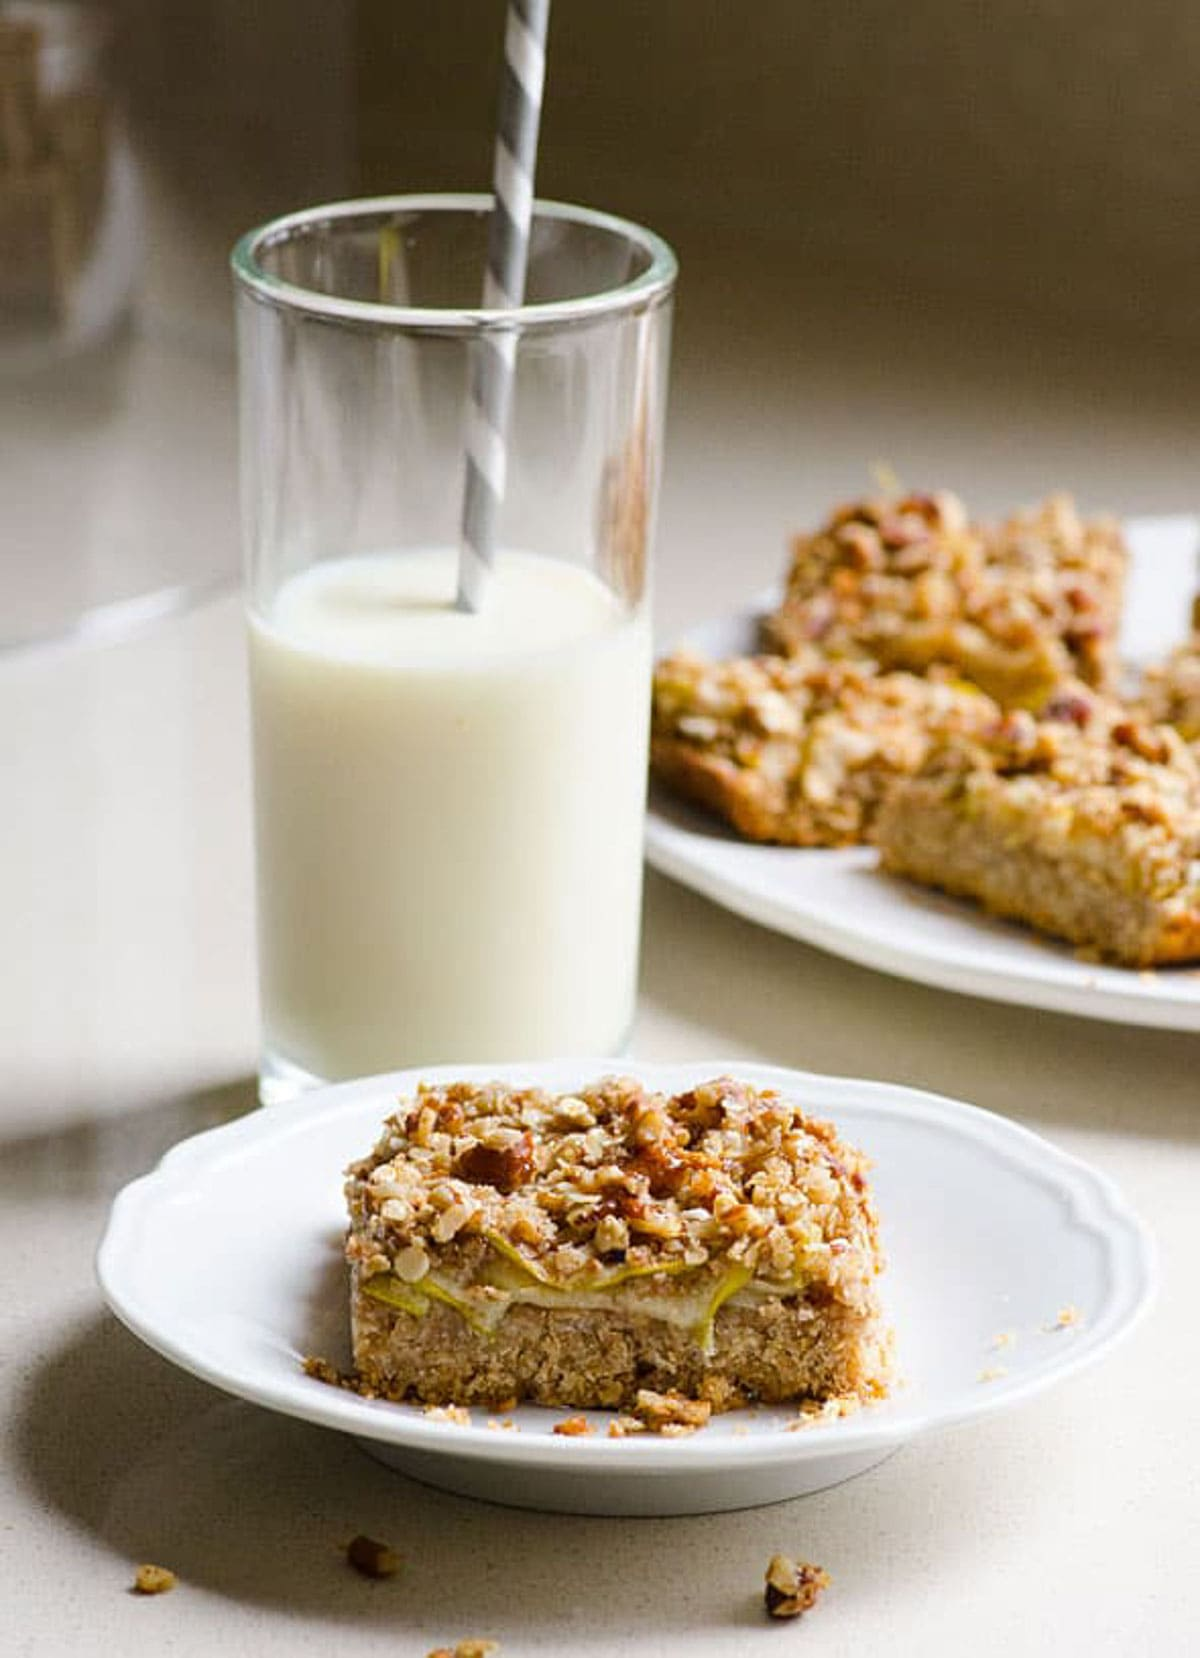 Apple Oatmeal Bars with Honey on plate beside a glass of milk